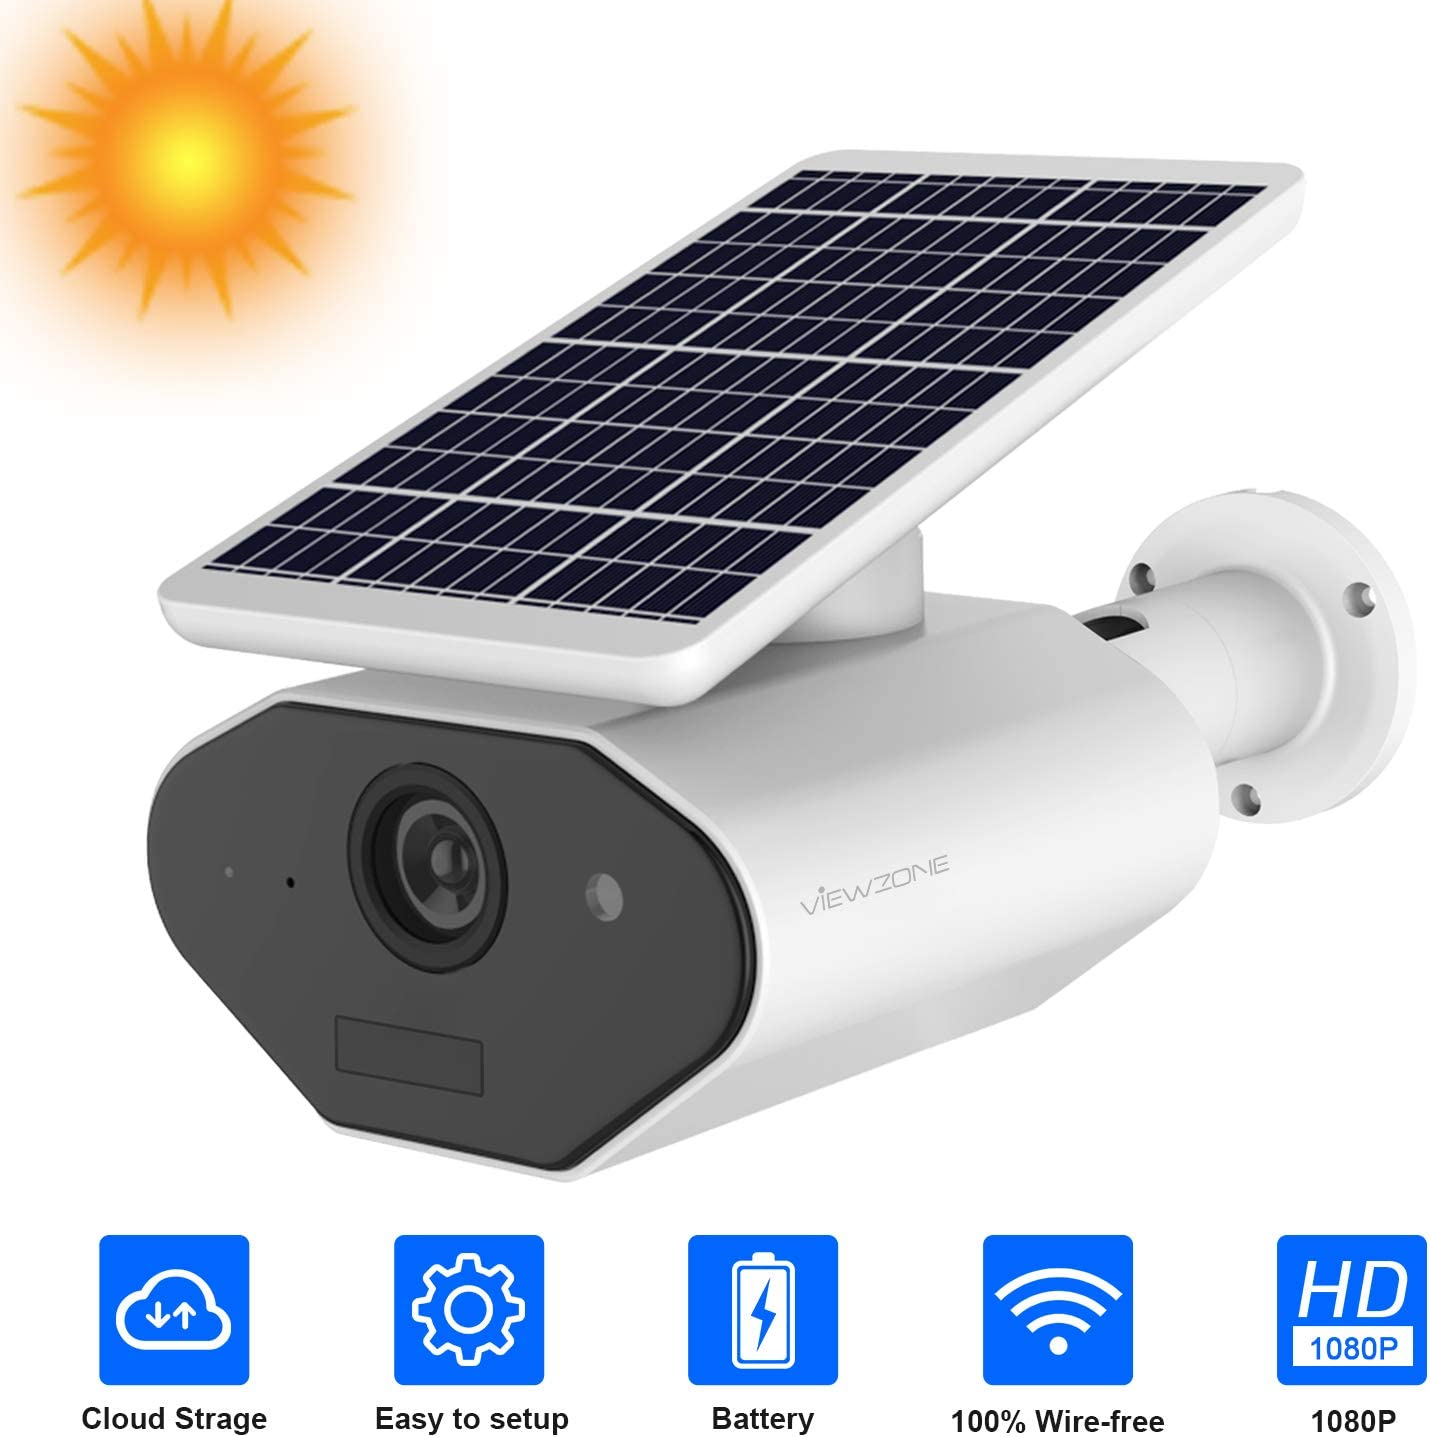 Wireless Battery Powered Security Camera Solar Powered Camera Outdoor 1080P Rechargeable Wire-Free Battery WiFi Camera for Home Security, 2 Way Audio Motion Detection,Cloud Storage, Work with Alexa